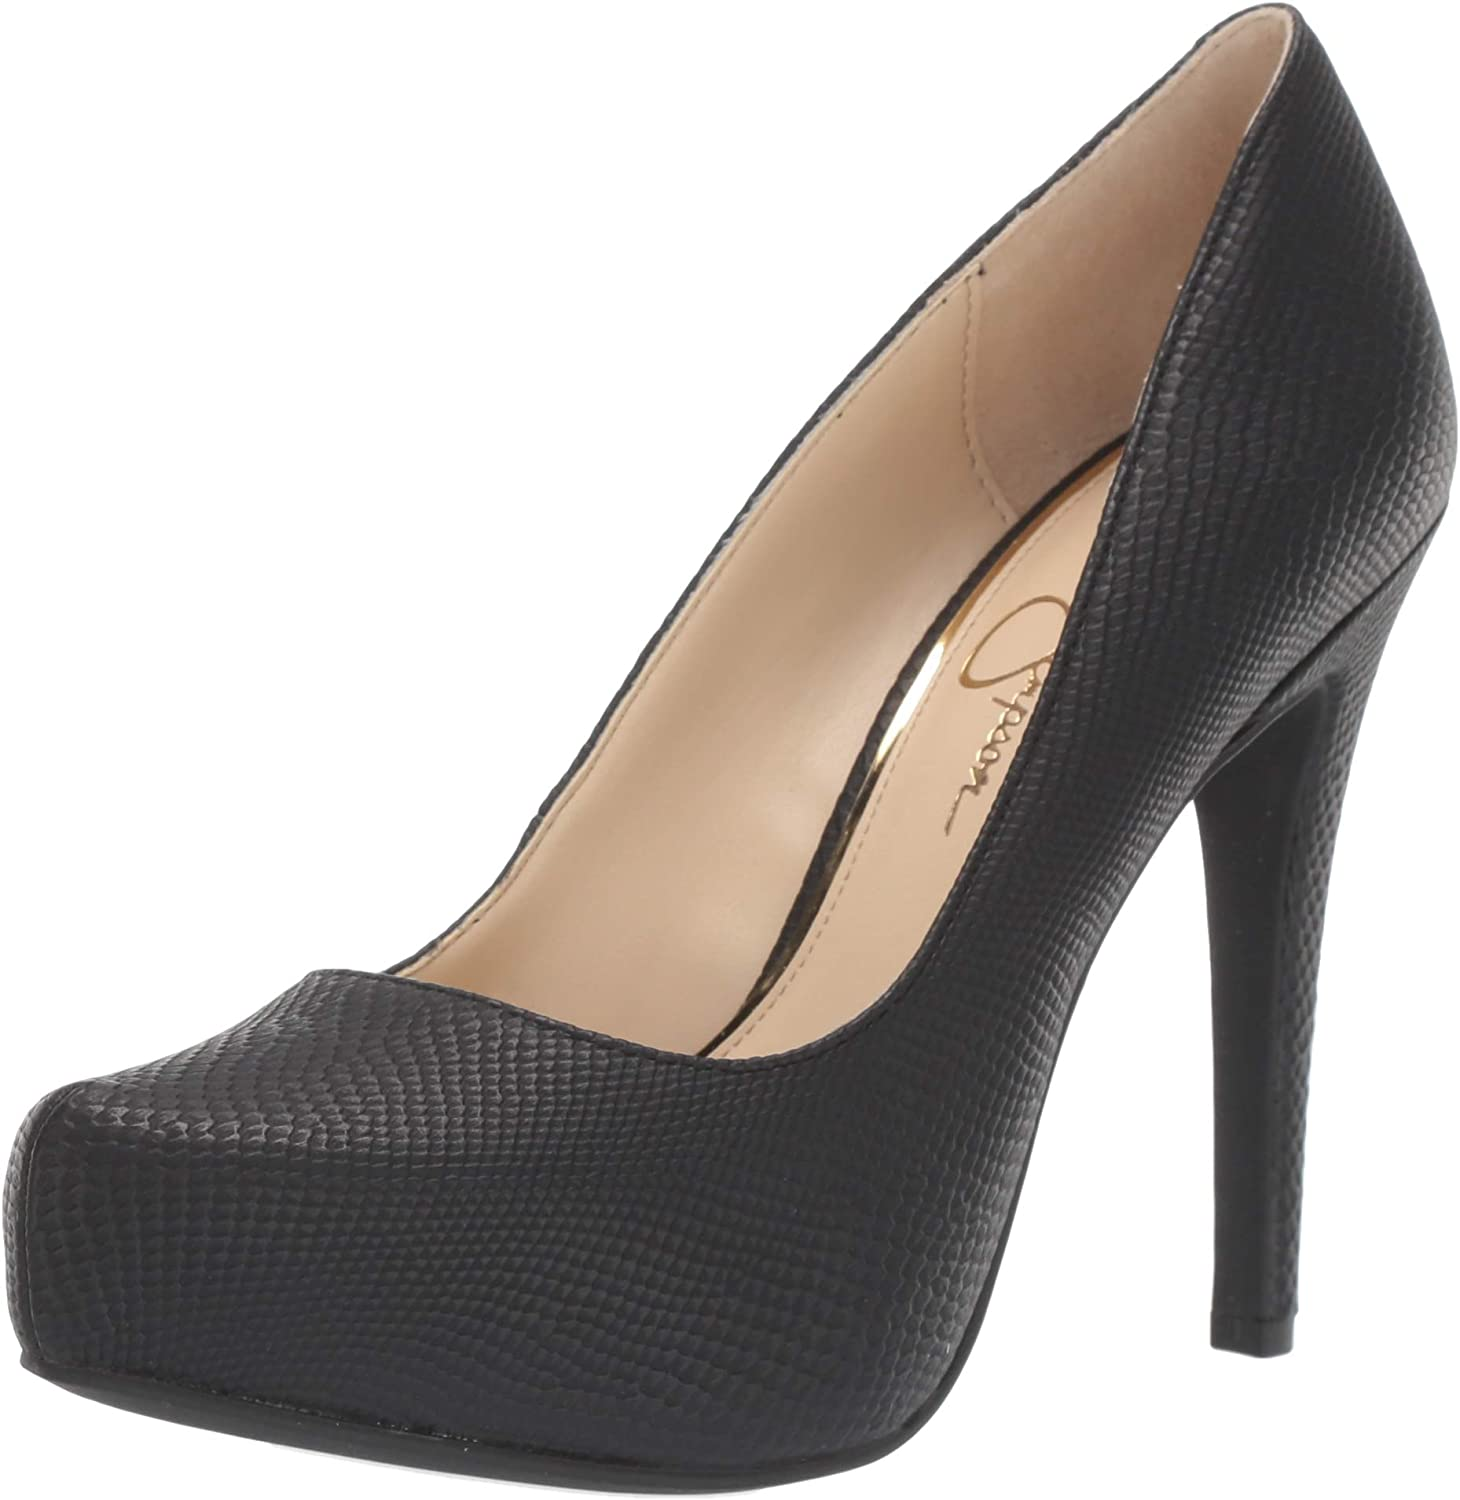 Jessica Simpson Women's Parisah